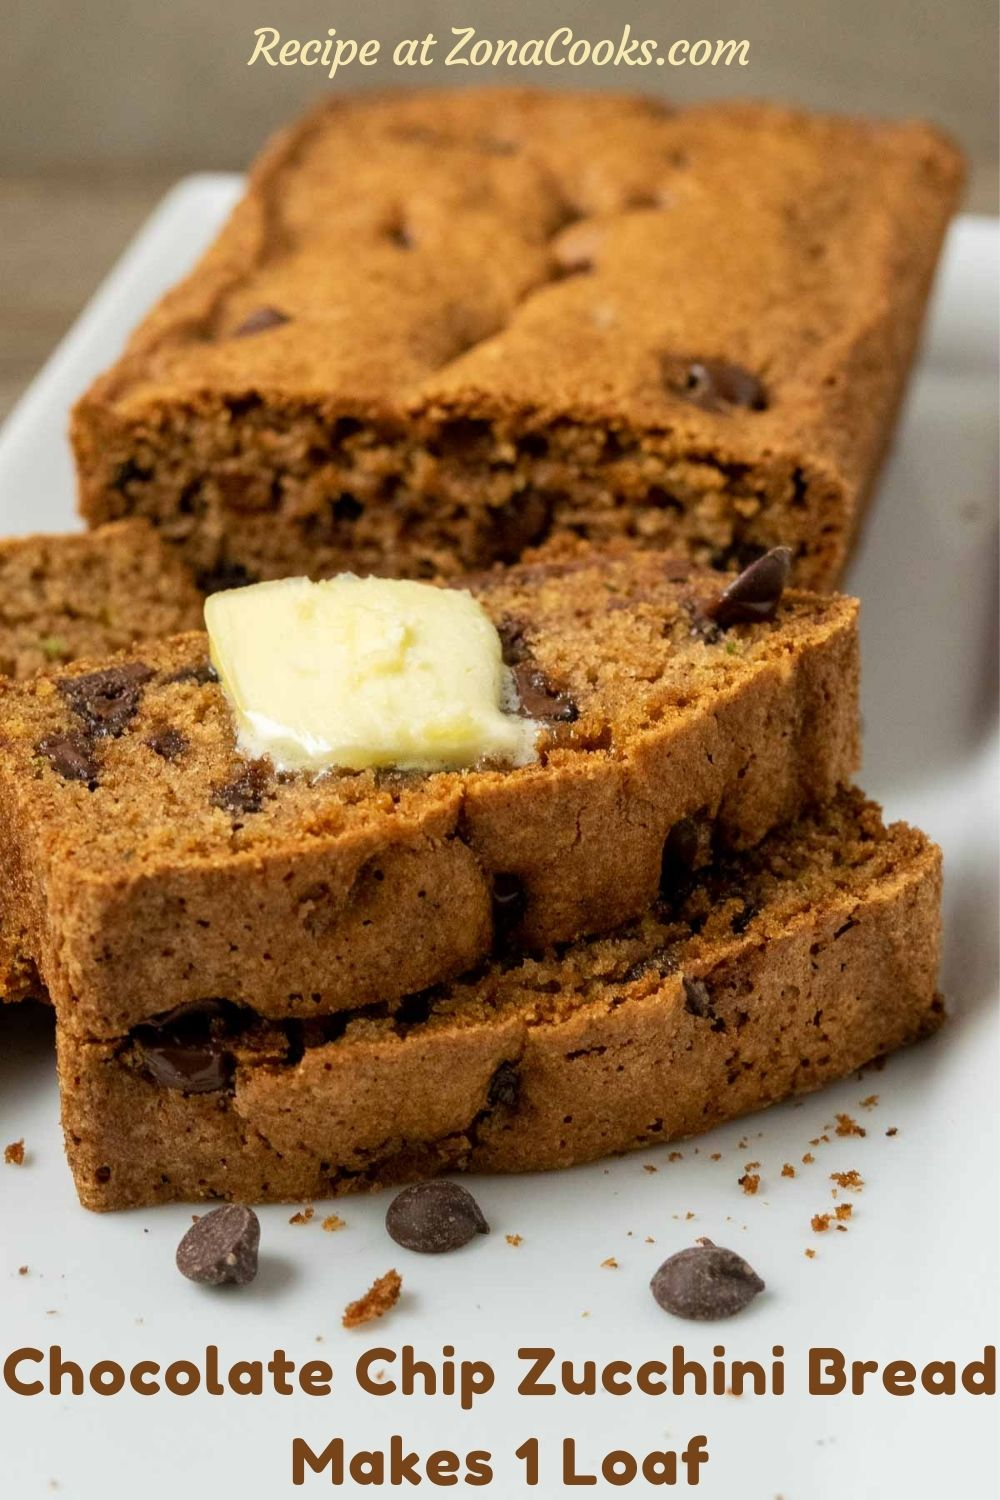 a loaf of chocolate chip zucchini bread with 3 slices laying down topped with butter and text reading recipe at zonacooks.com chocolate chip zucchini bread makes 1 loaf.